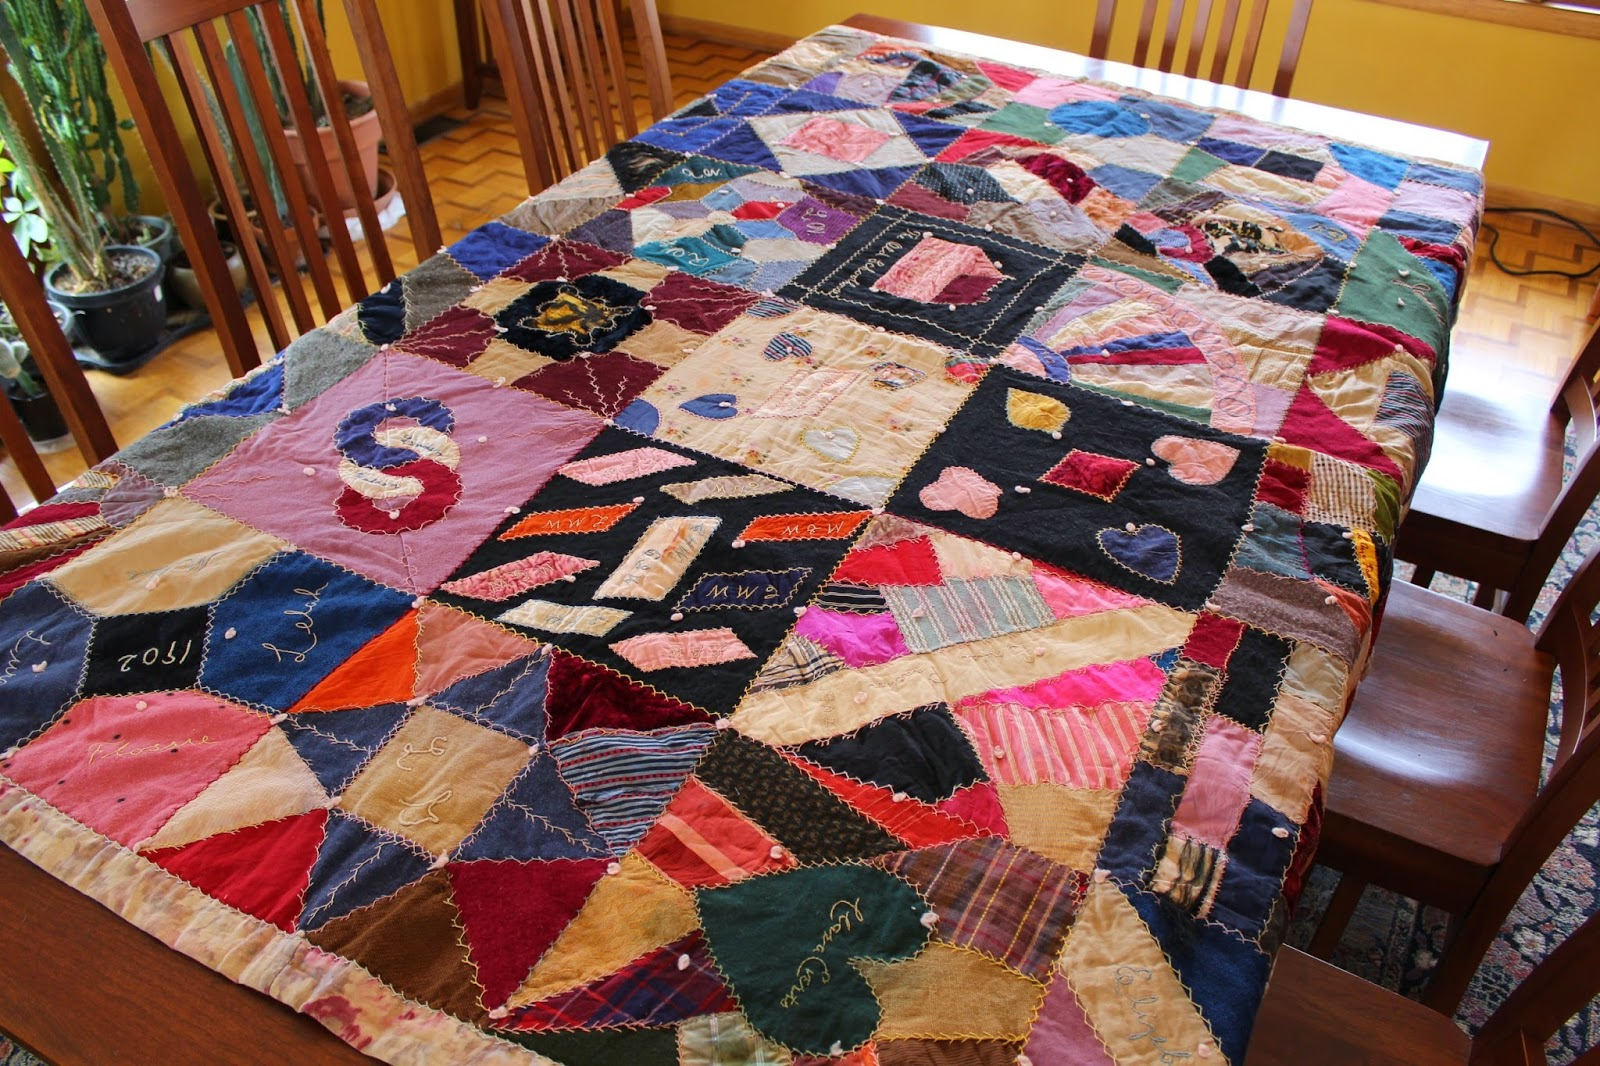 taylor in summer quilts re viewing quilt you park n shop handmade the by